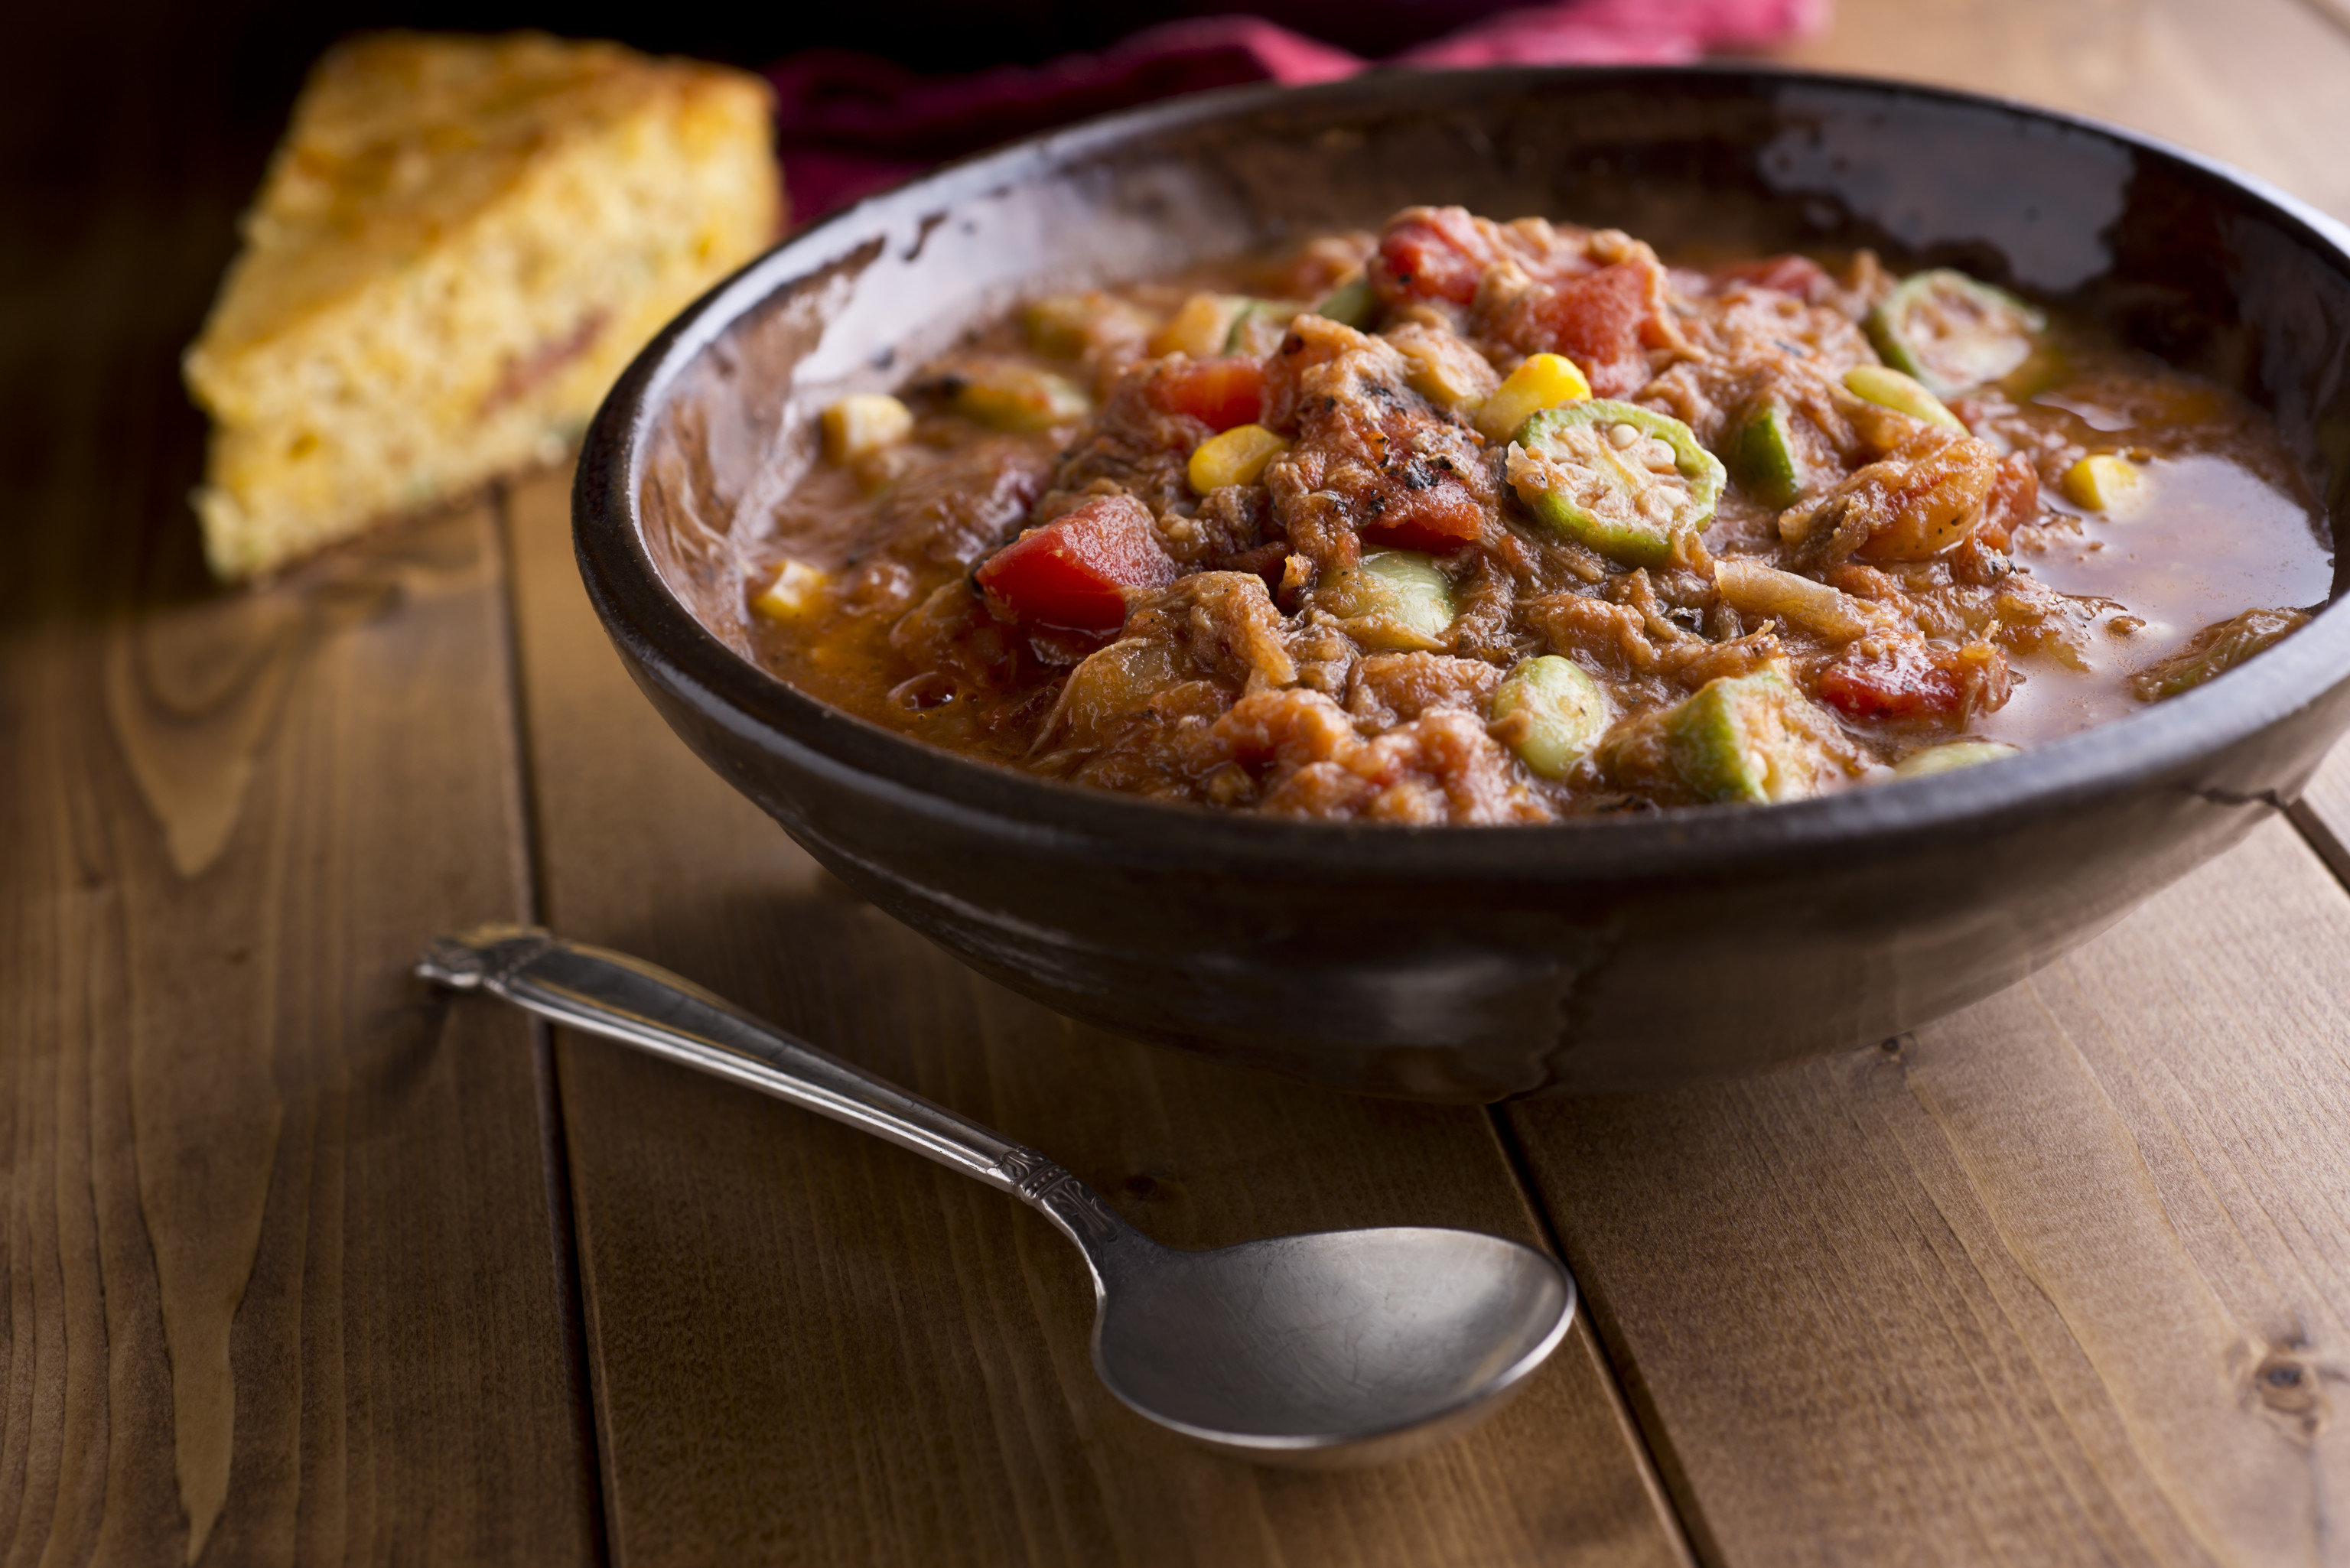 Food + Drink food dish cuisine produce meat vegetable meal gumbo soup